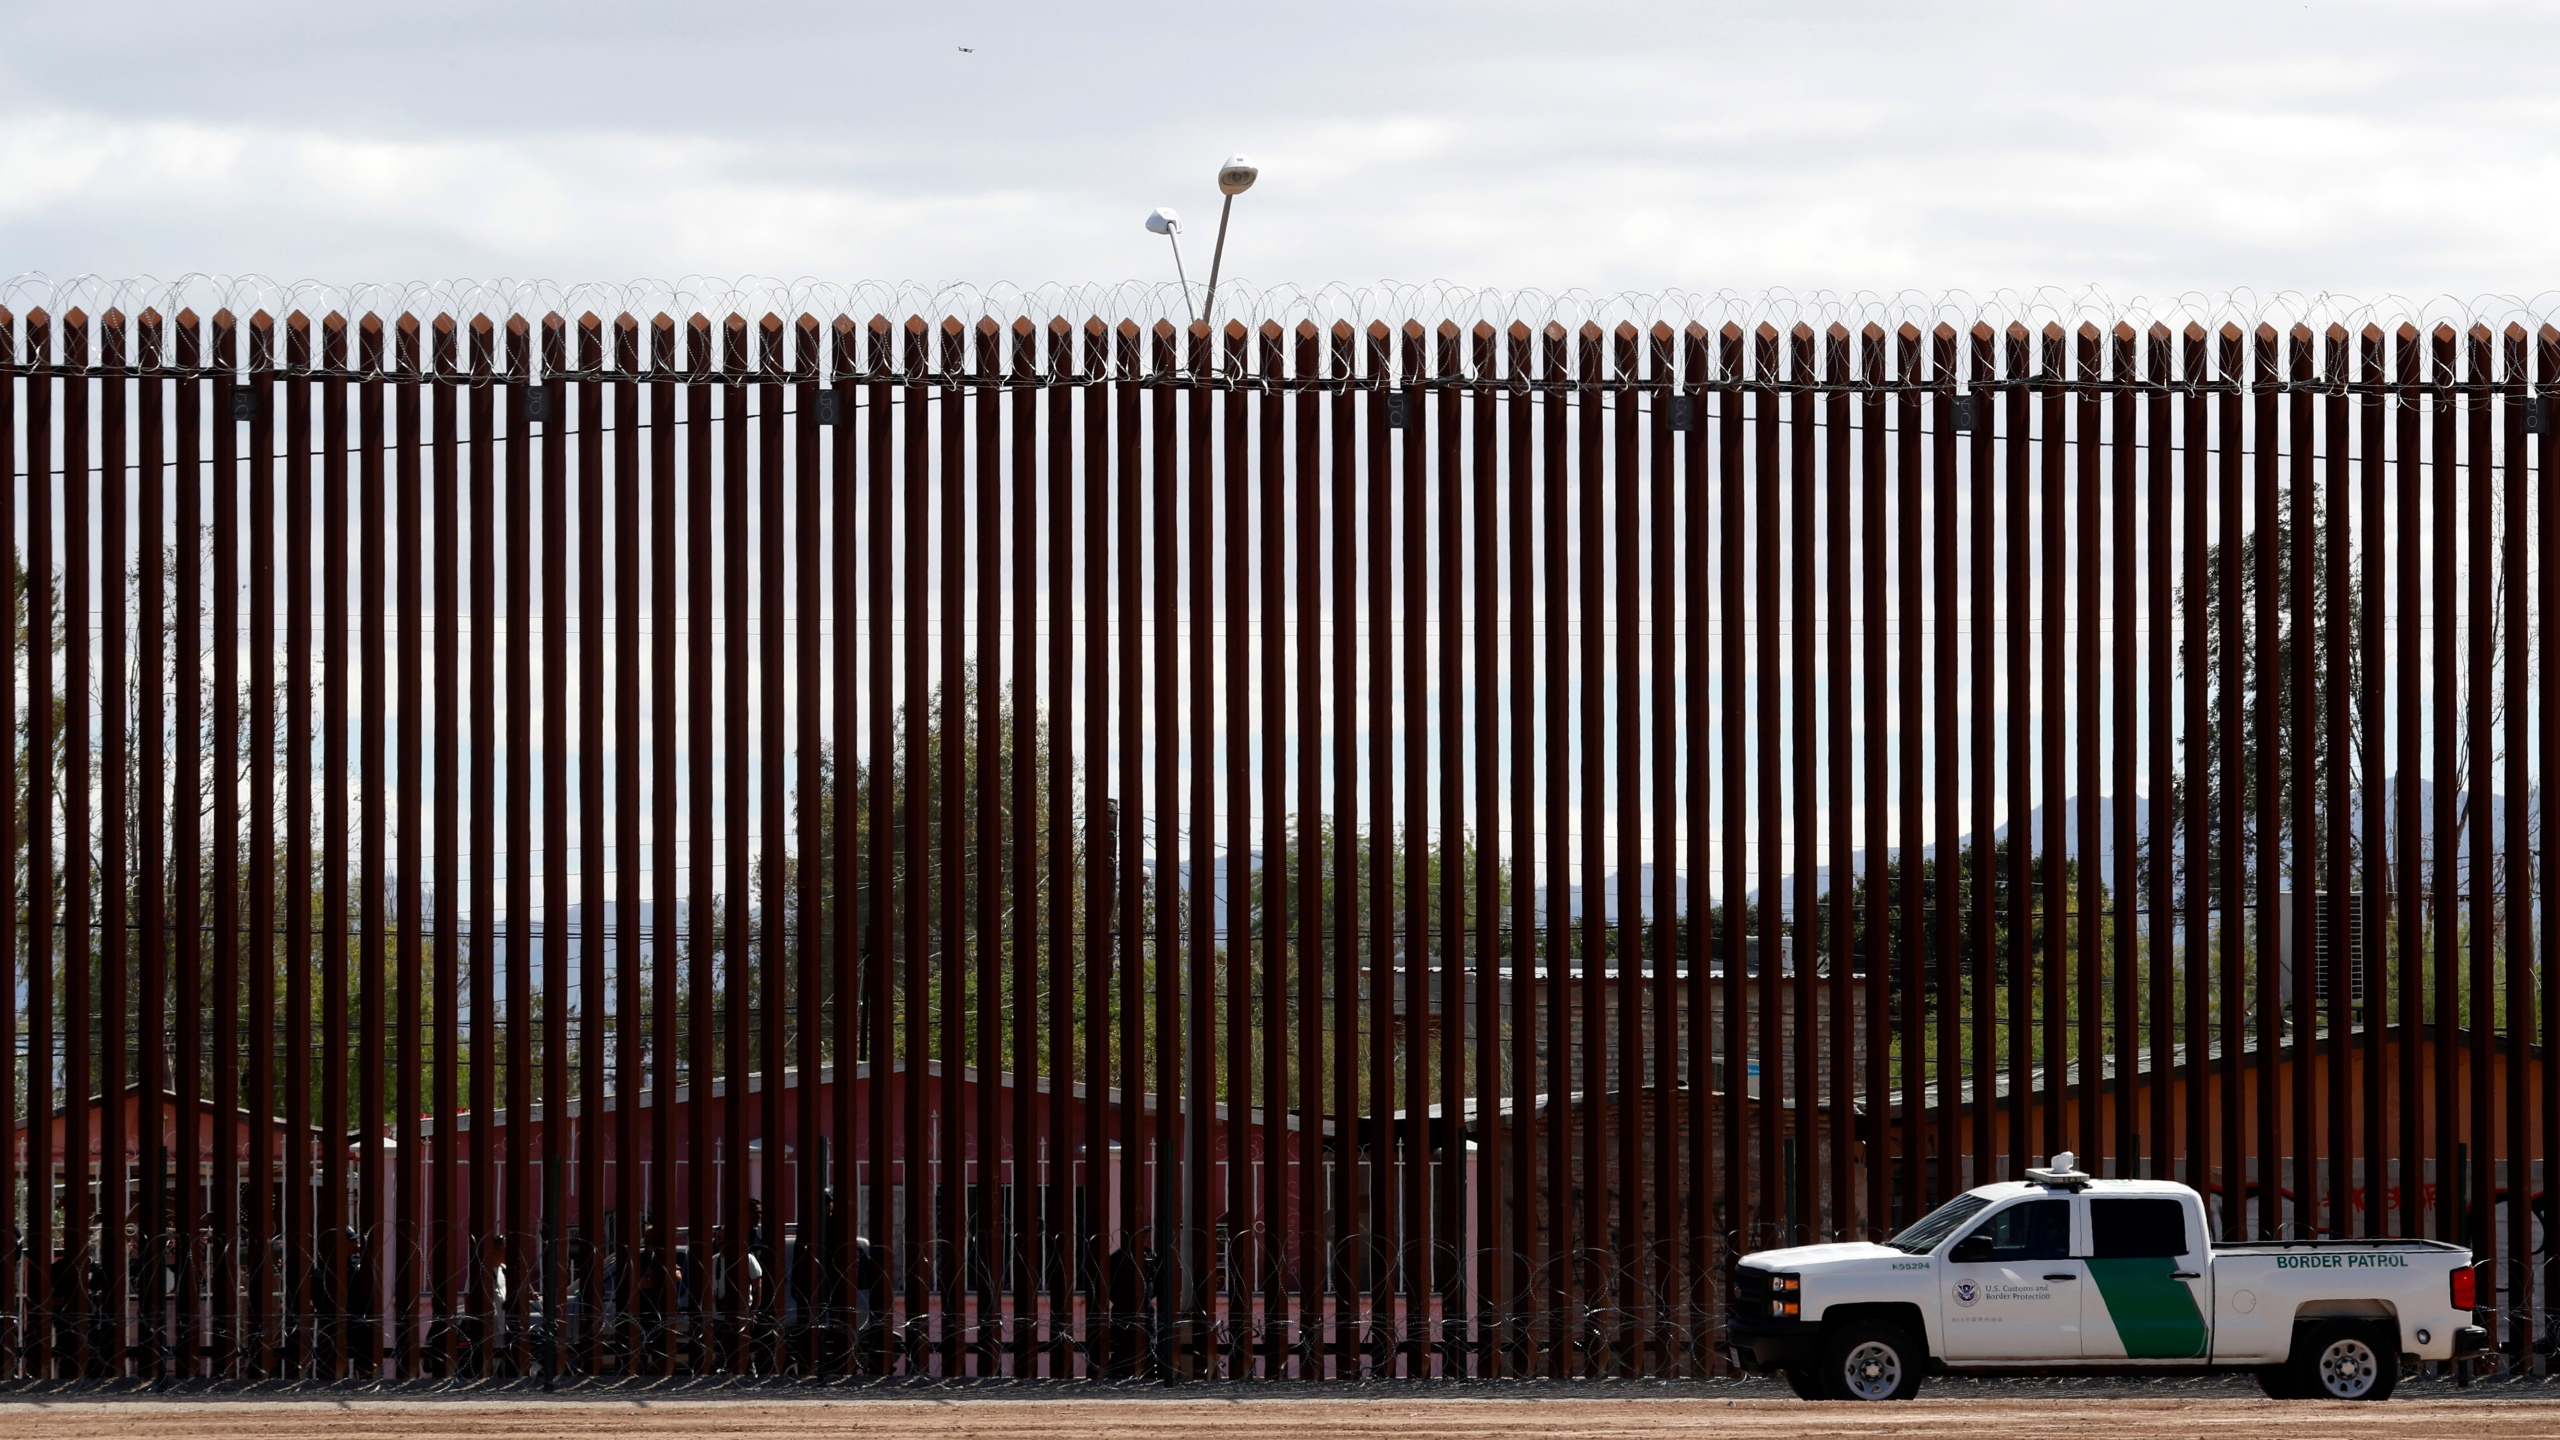 Congress_Border_Wall_31641-159532.jpg20132097